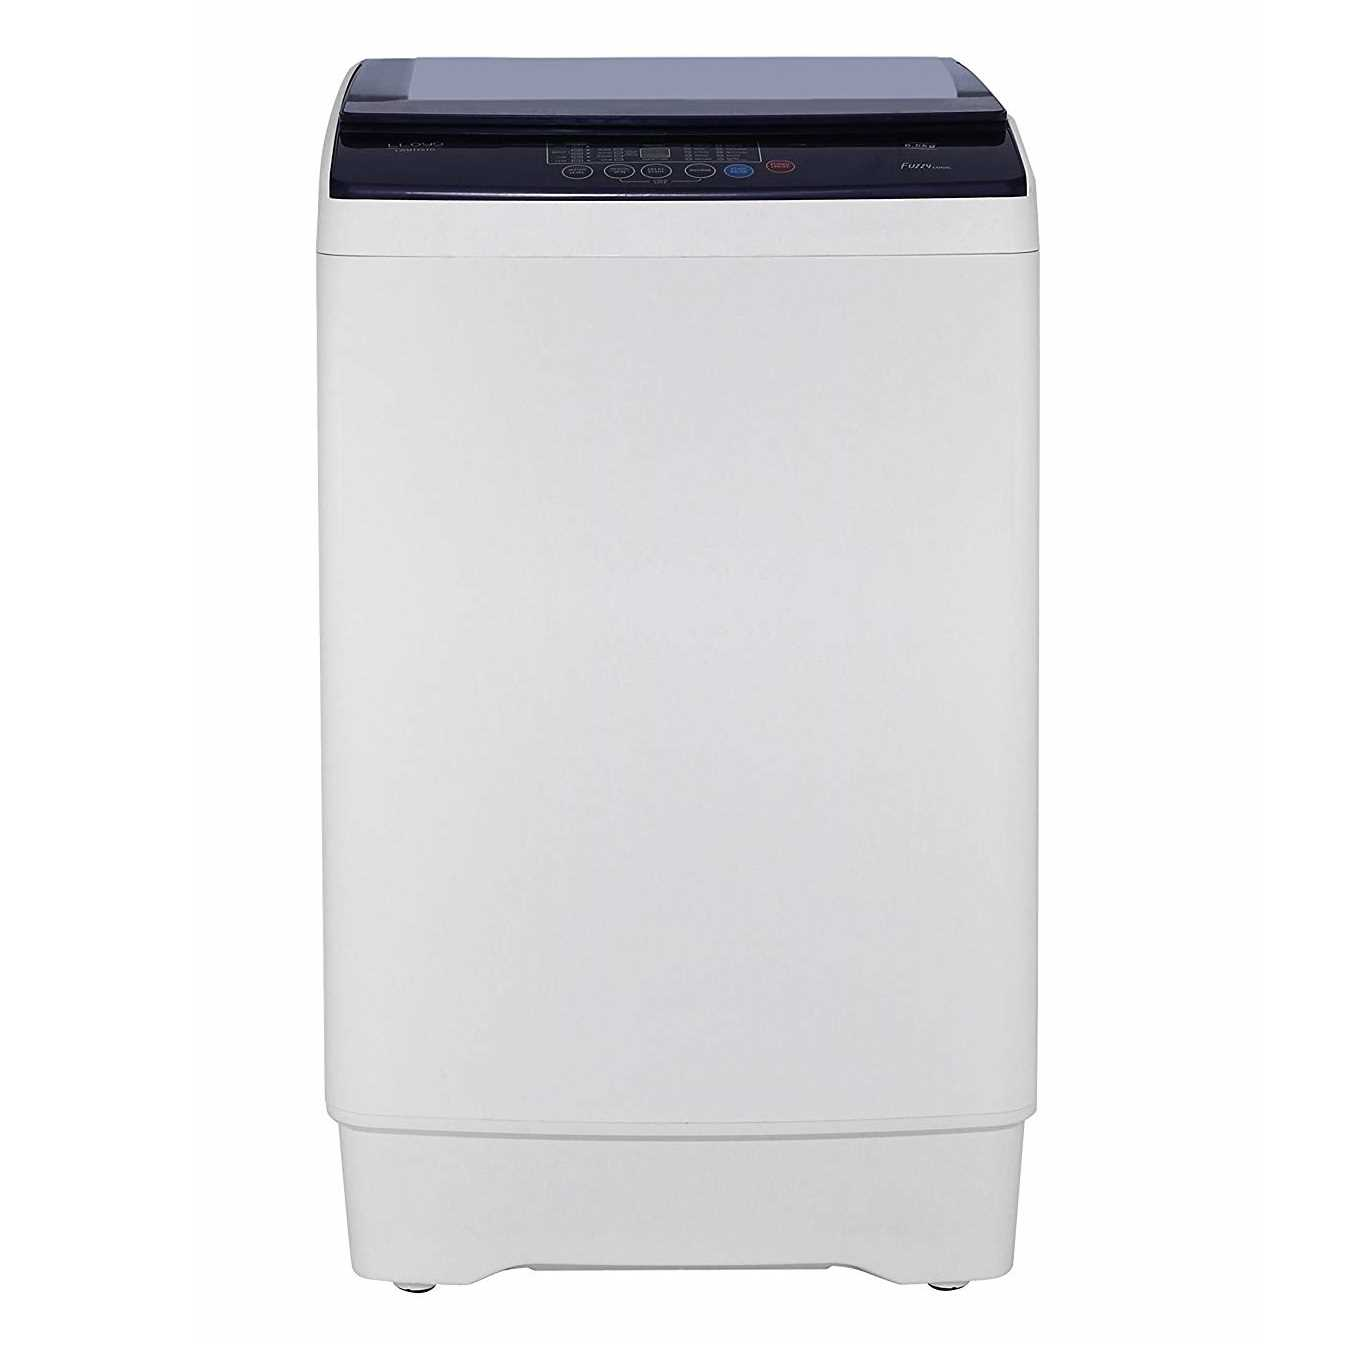 Lloyd LWMT65TG 6.5 Kg Fully Automatic Top Loading Washing Machine